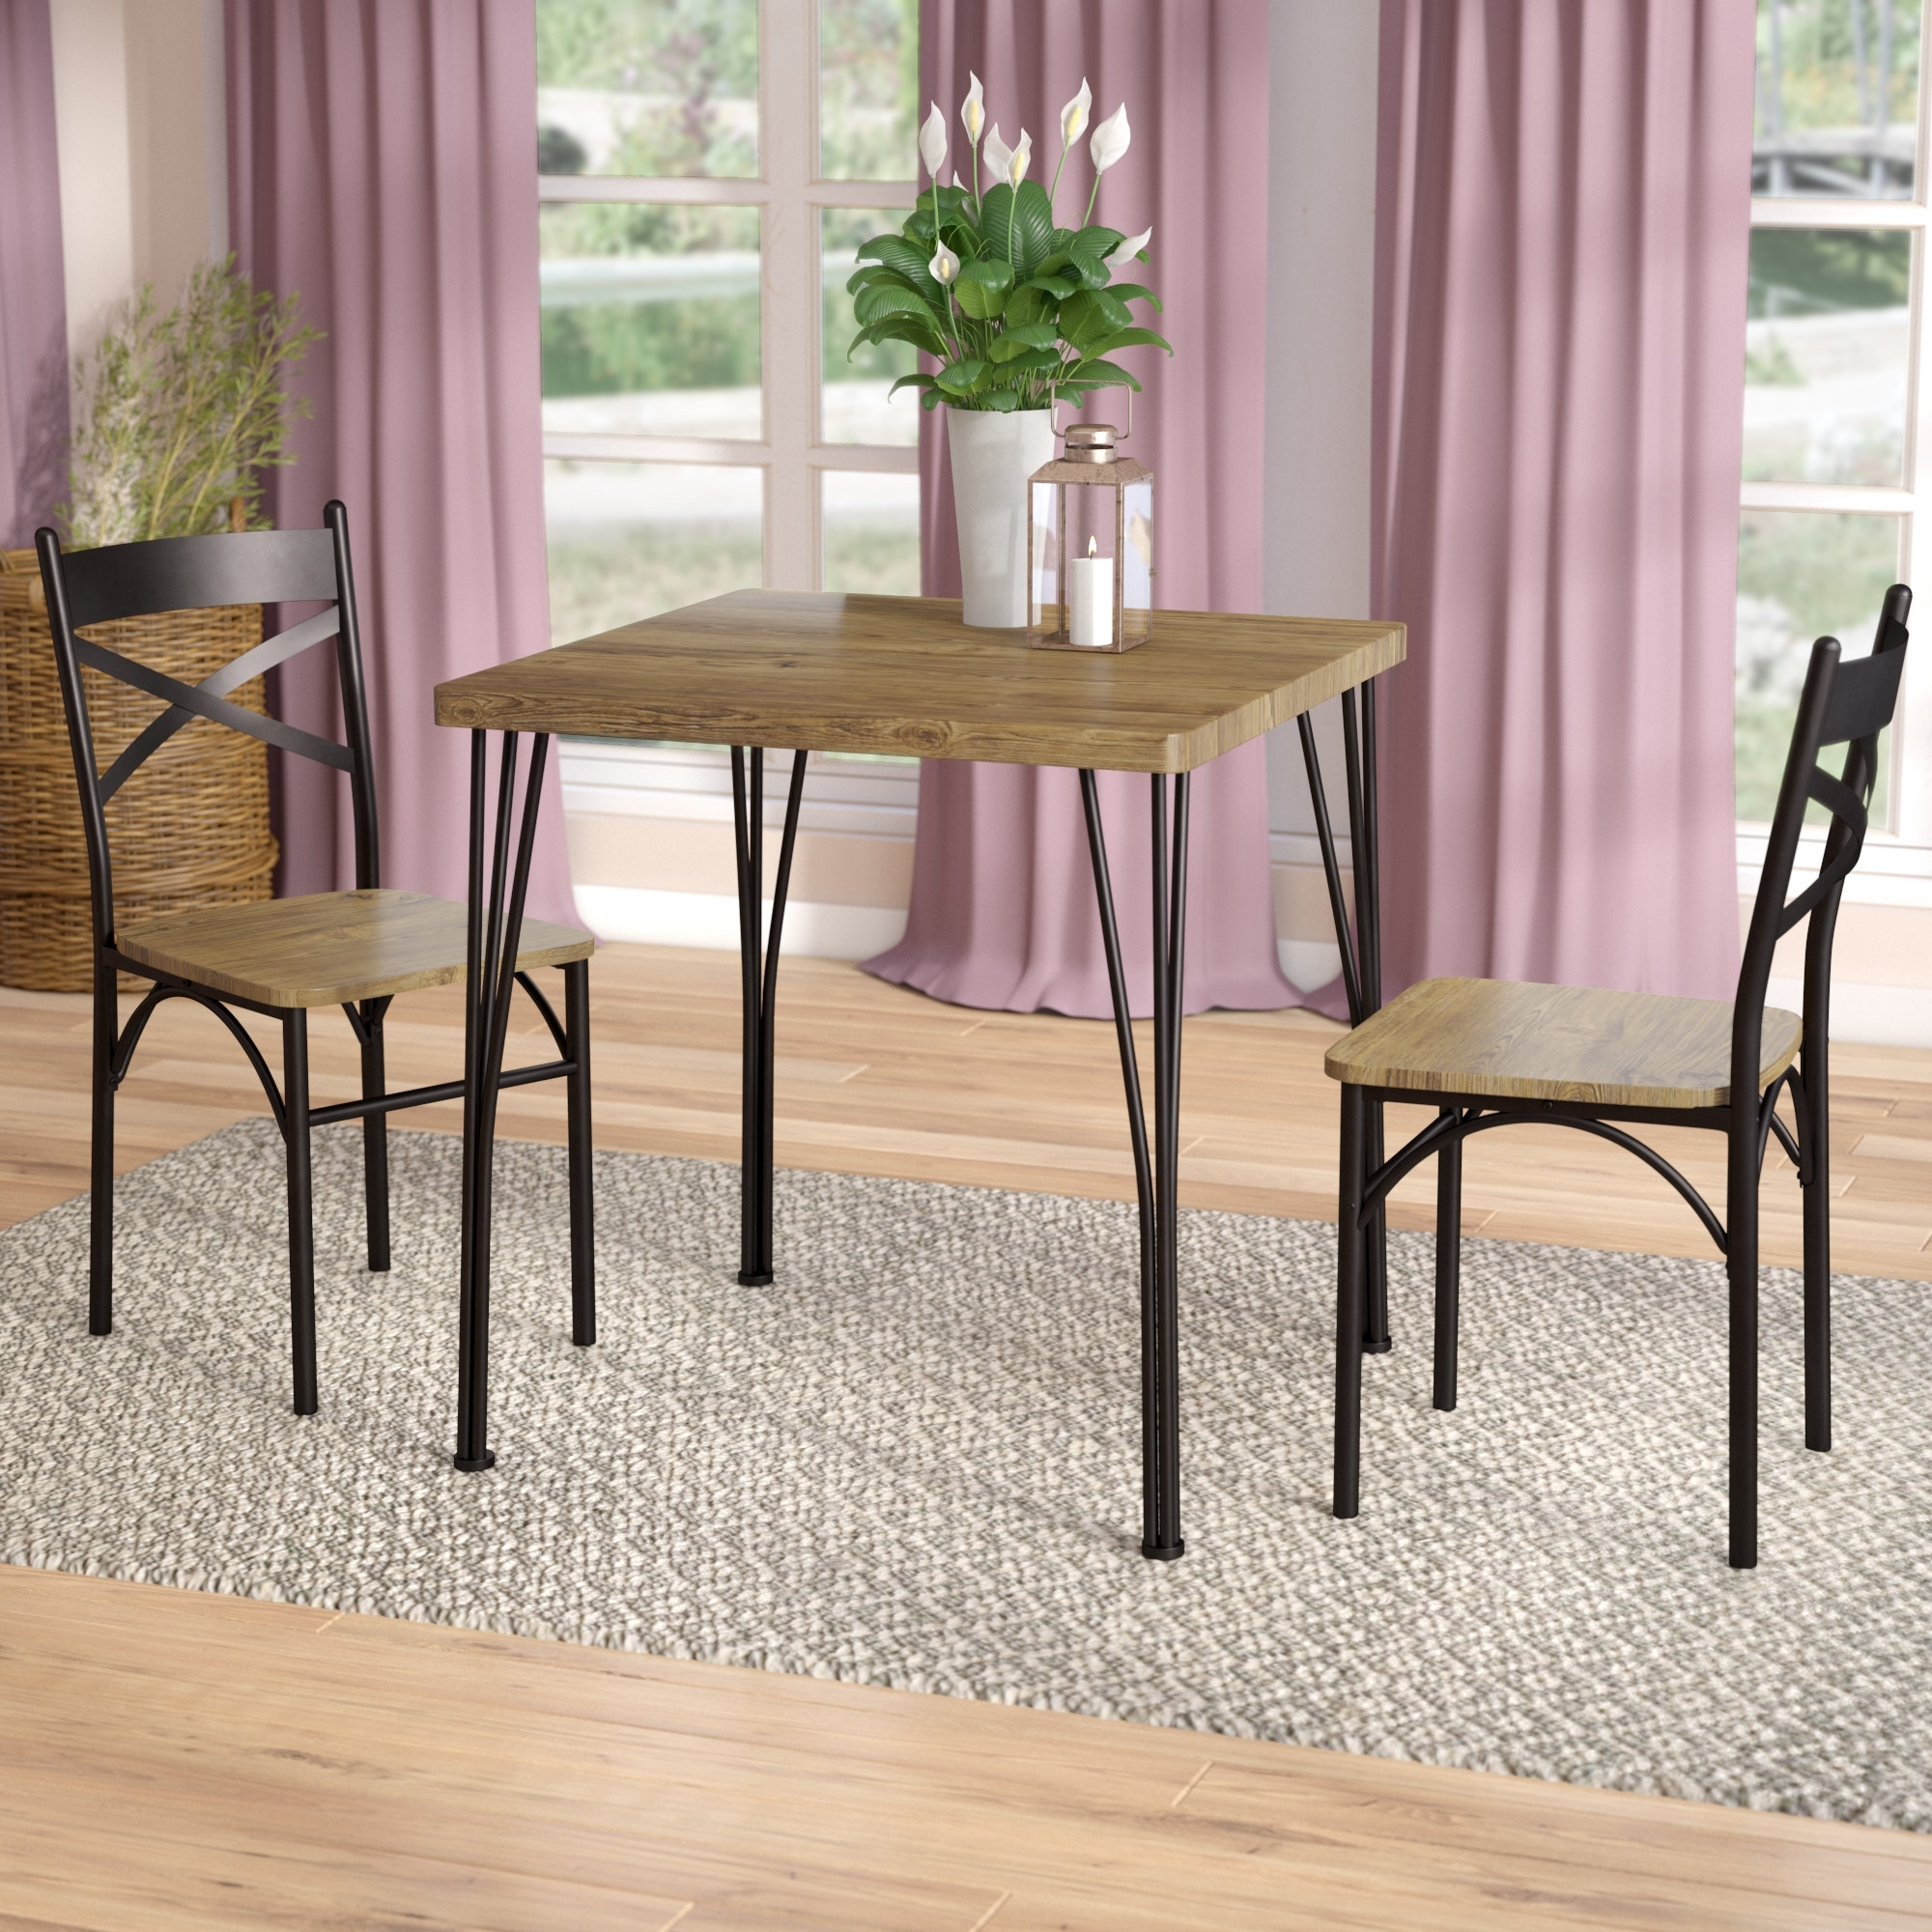 Guertin 3 Piece Dining Set & Reviews | Joss & Main inside Delano Smoke 3 Piece Sectionals (Image 12 of 30)